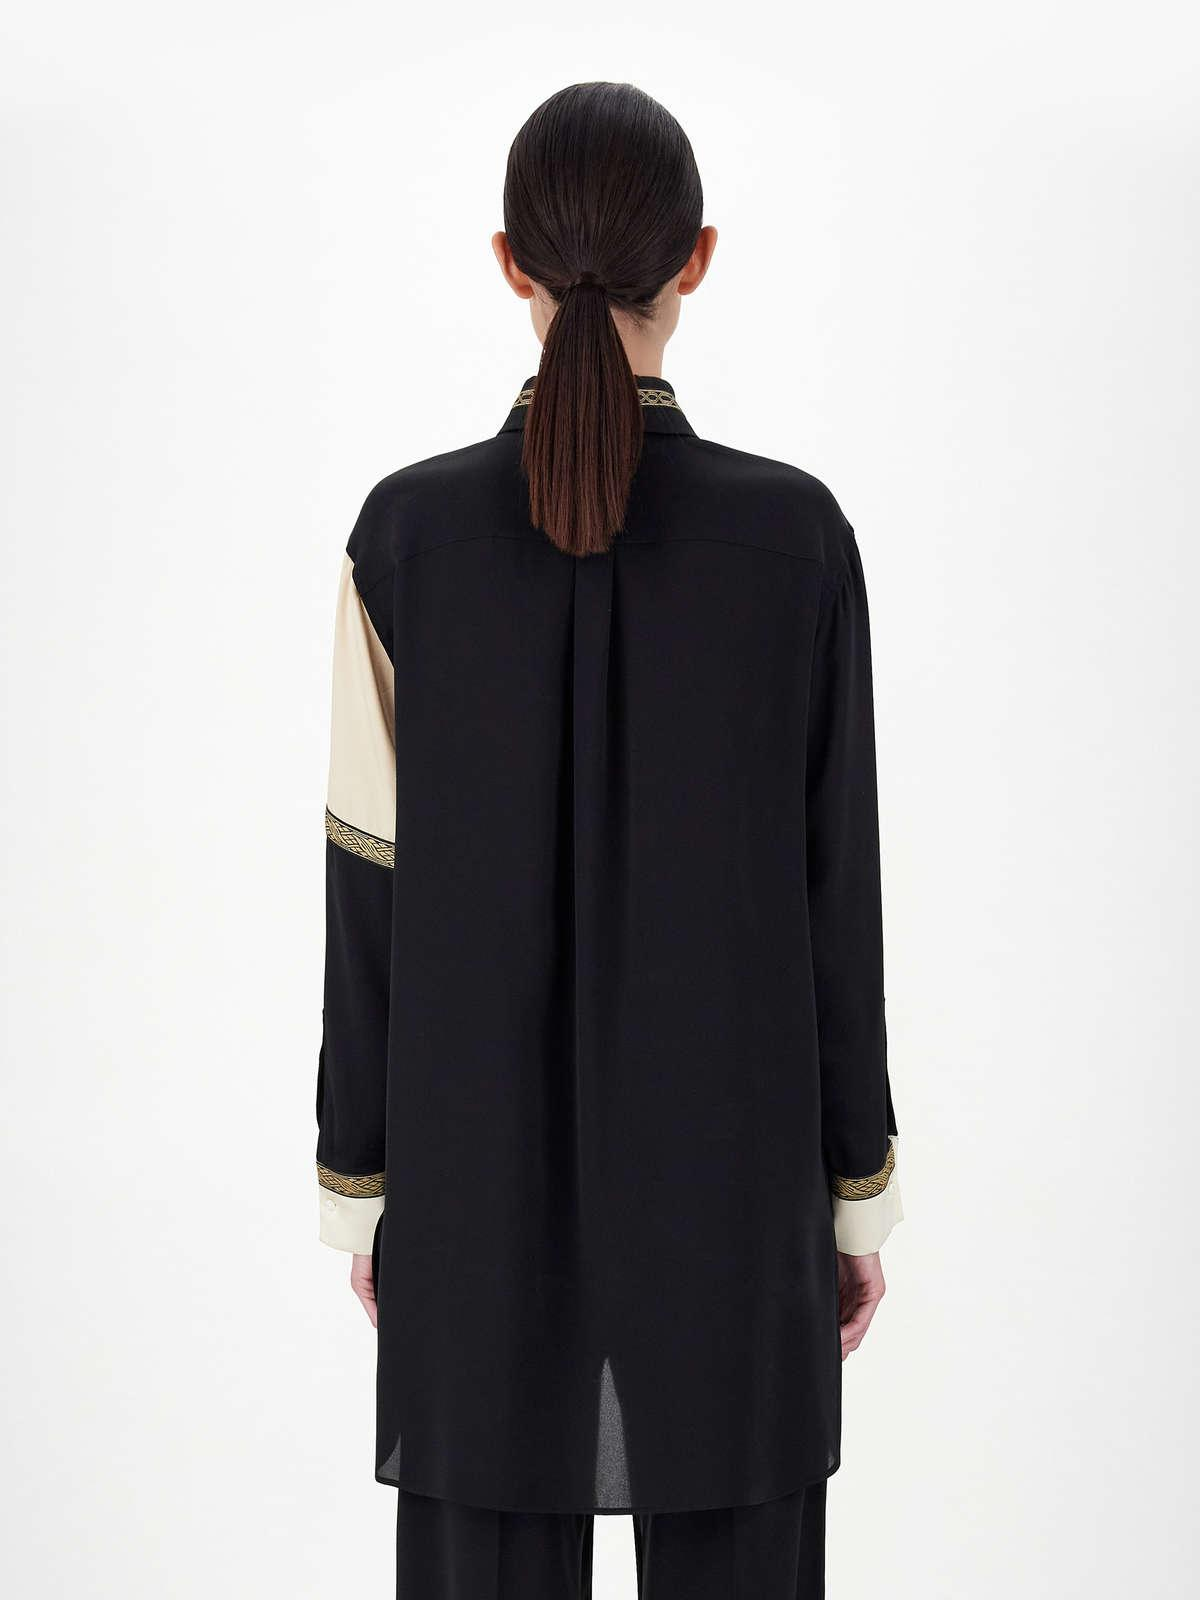 Womens Max Mara Blouses | Men'S-Style Oversized Shirt In Pure Silk Charmeuse Black